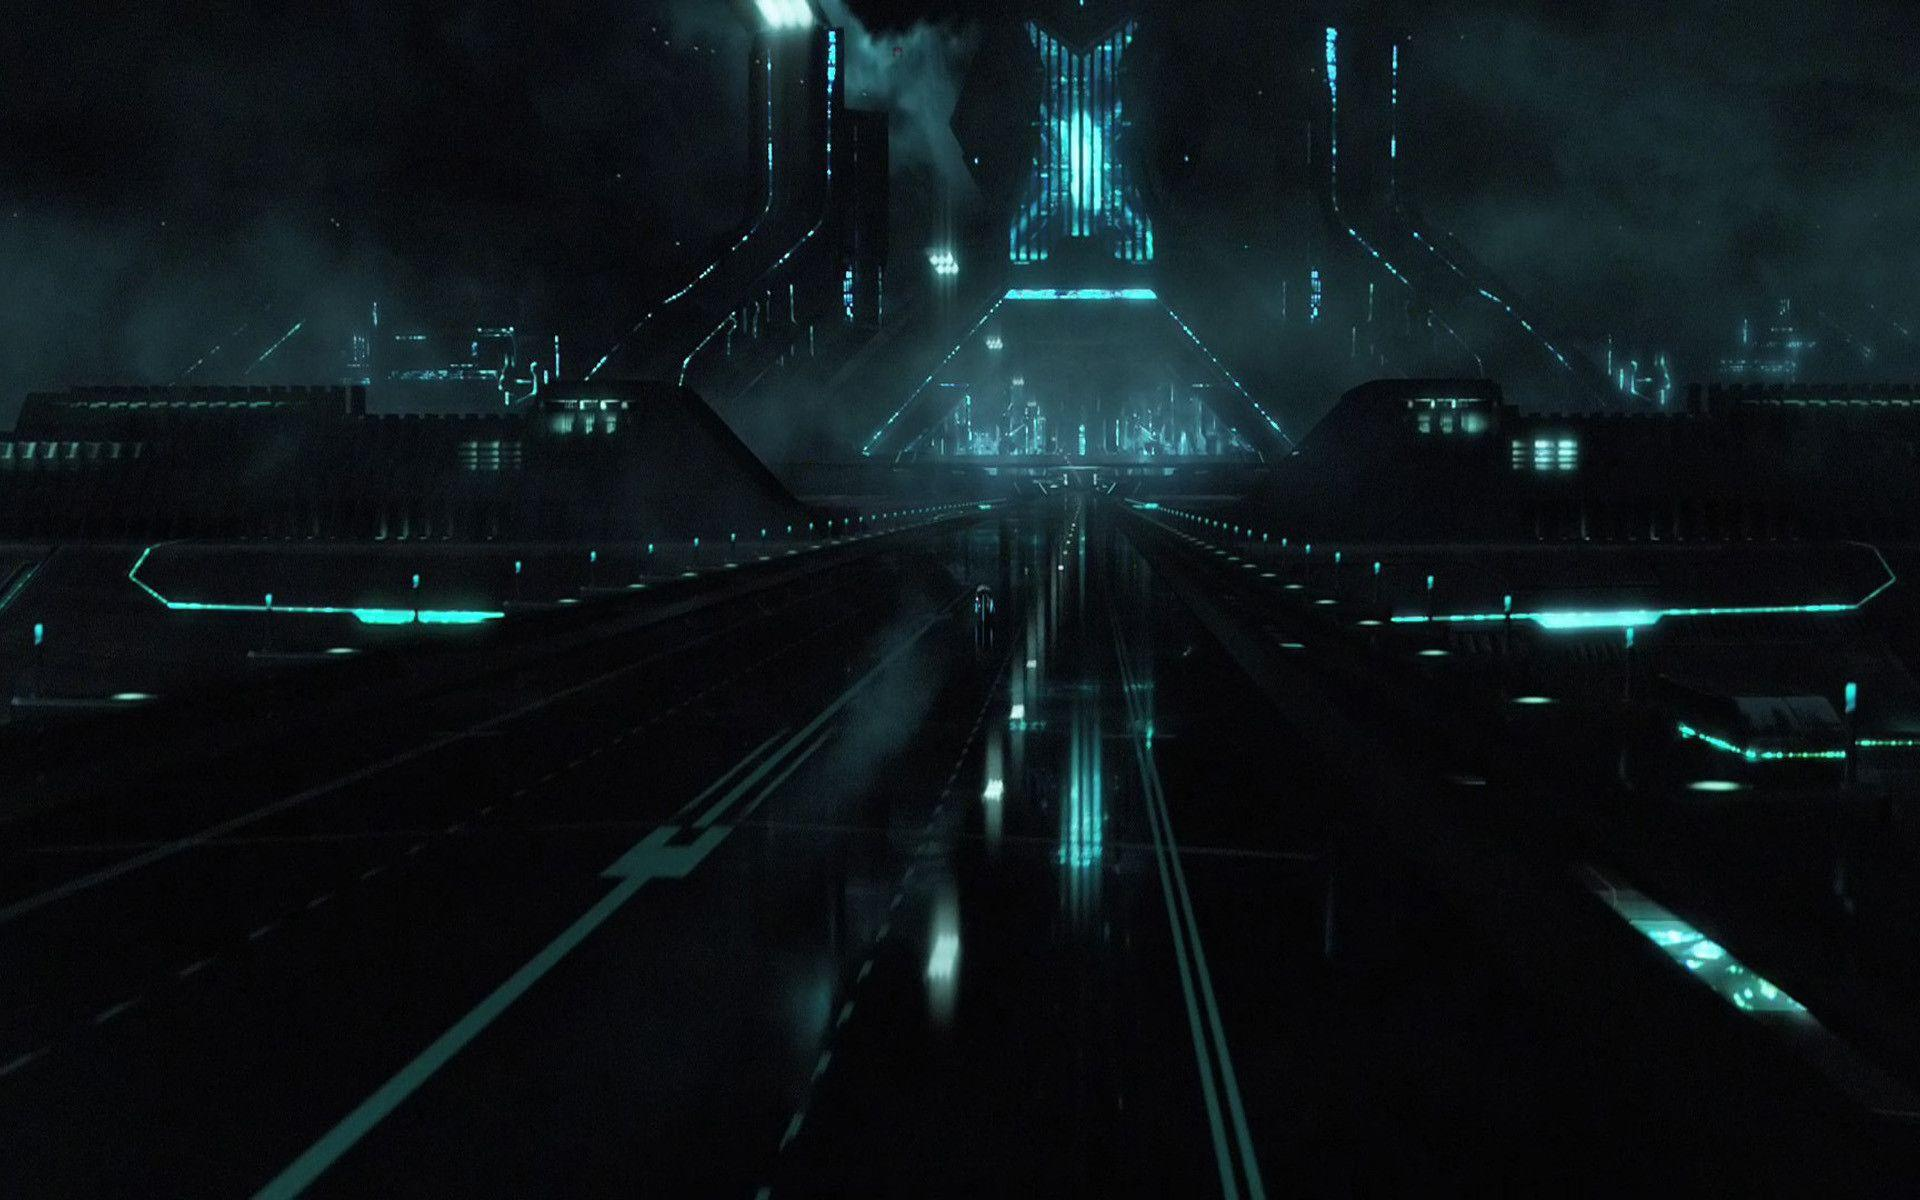 Tron Legacy Wallpapers - Full HD wallpaper search - page 2